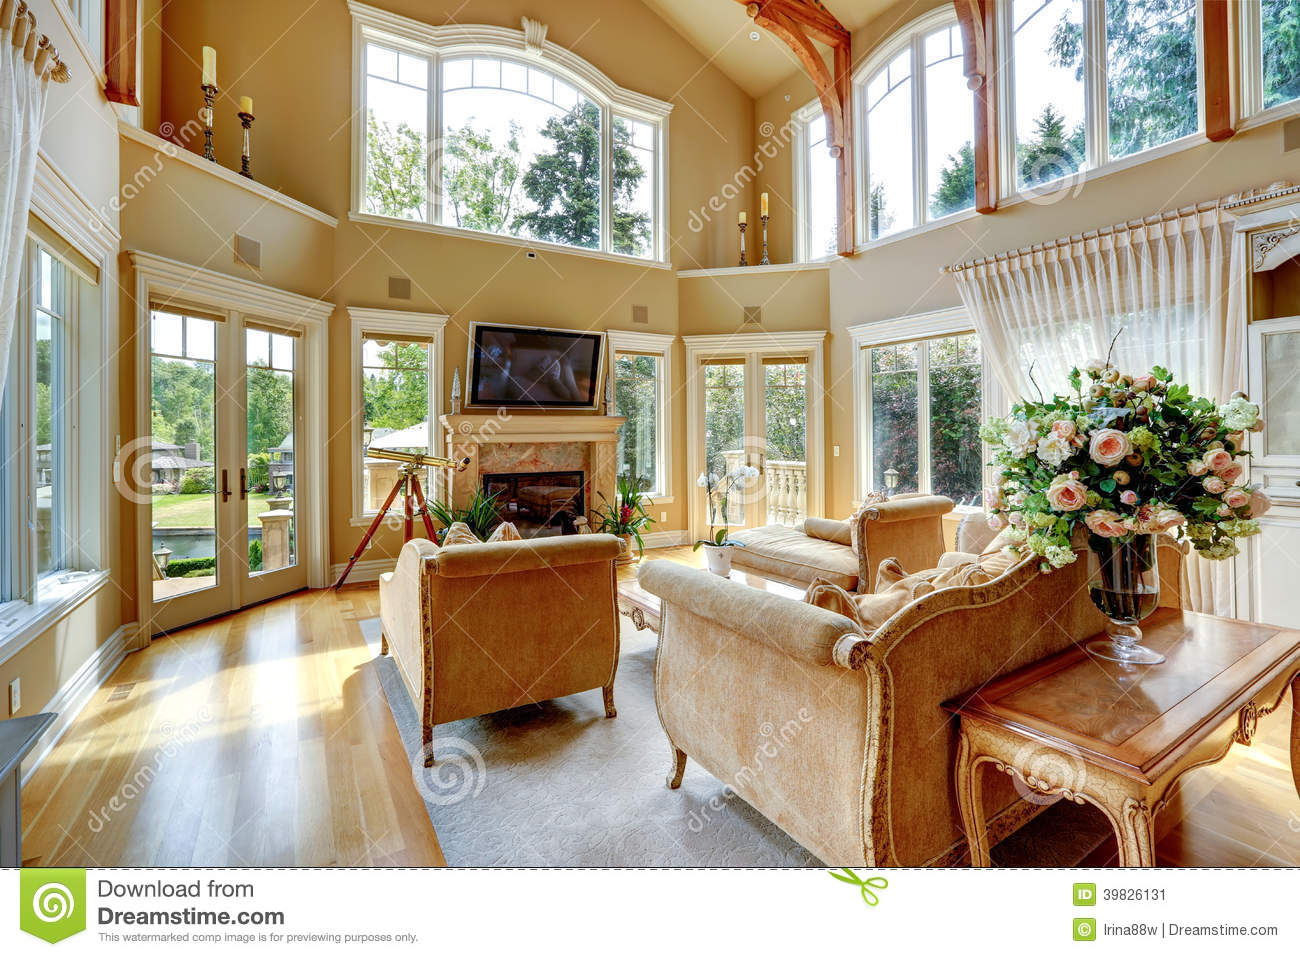 Mansion Interior Living Room With Tv : Impressive high ceiling living room with tv, fireplace and antique ...